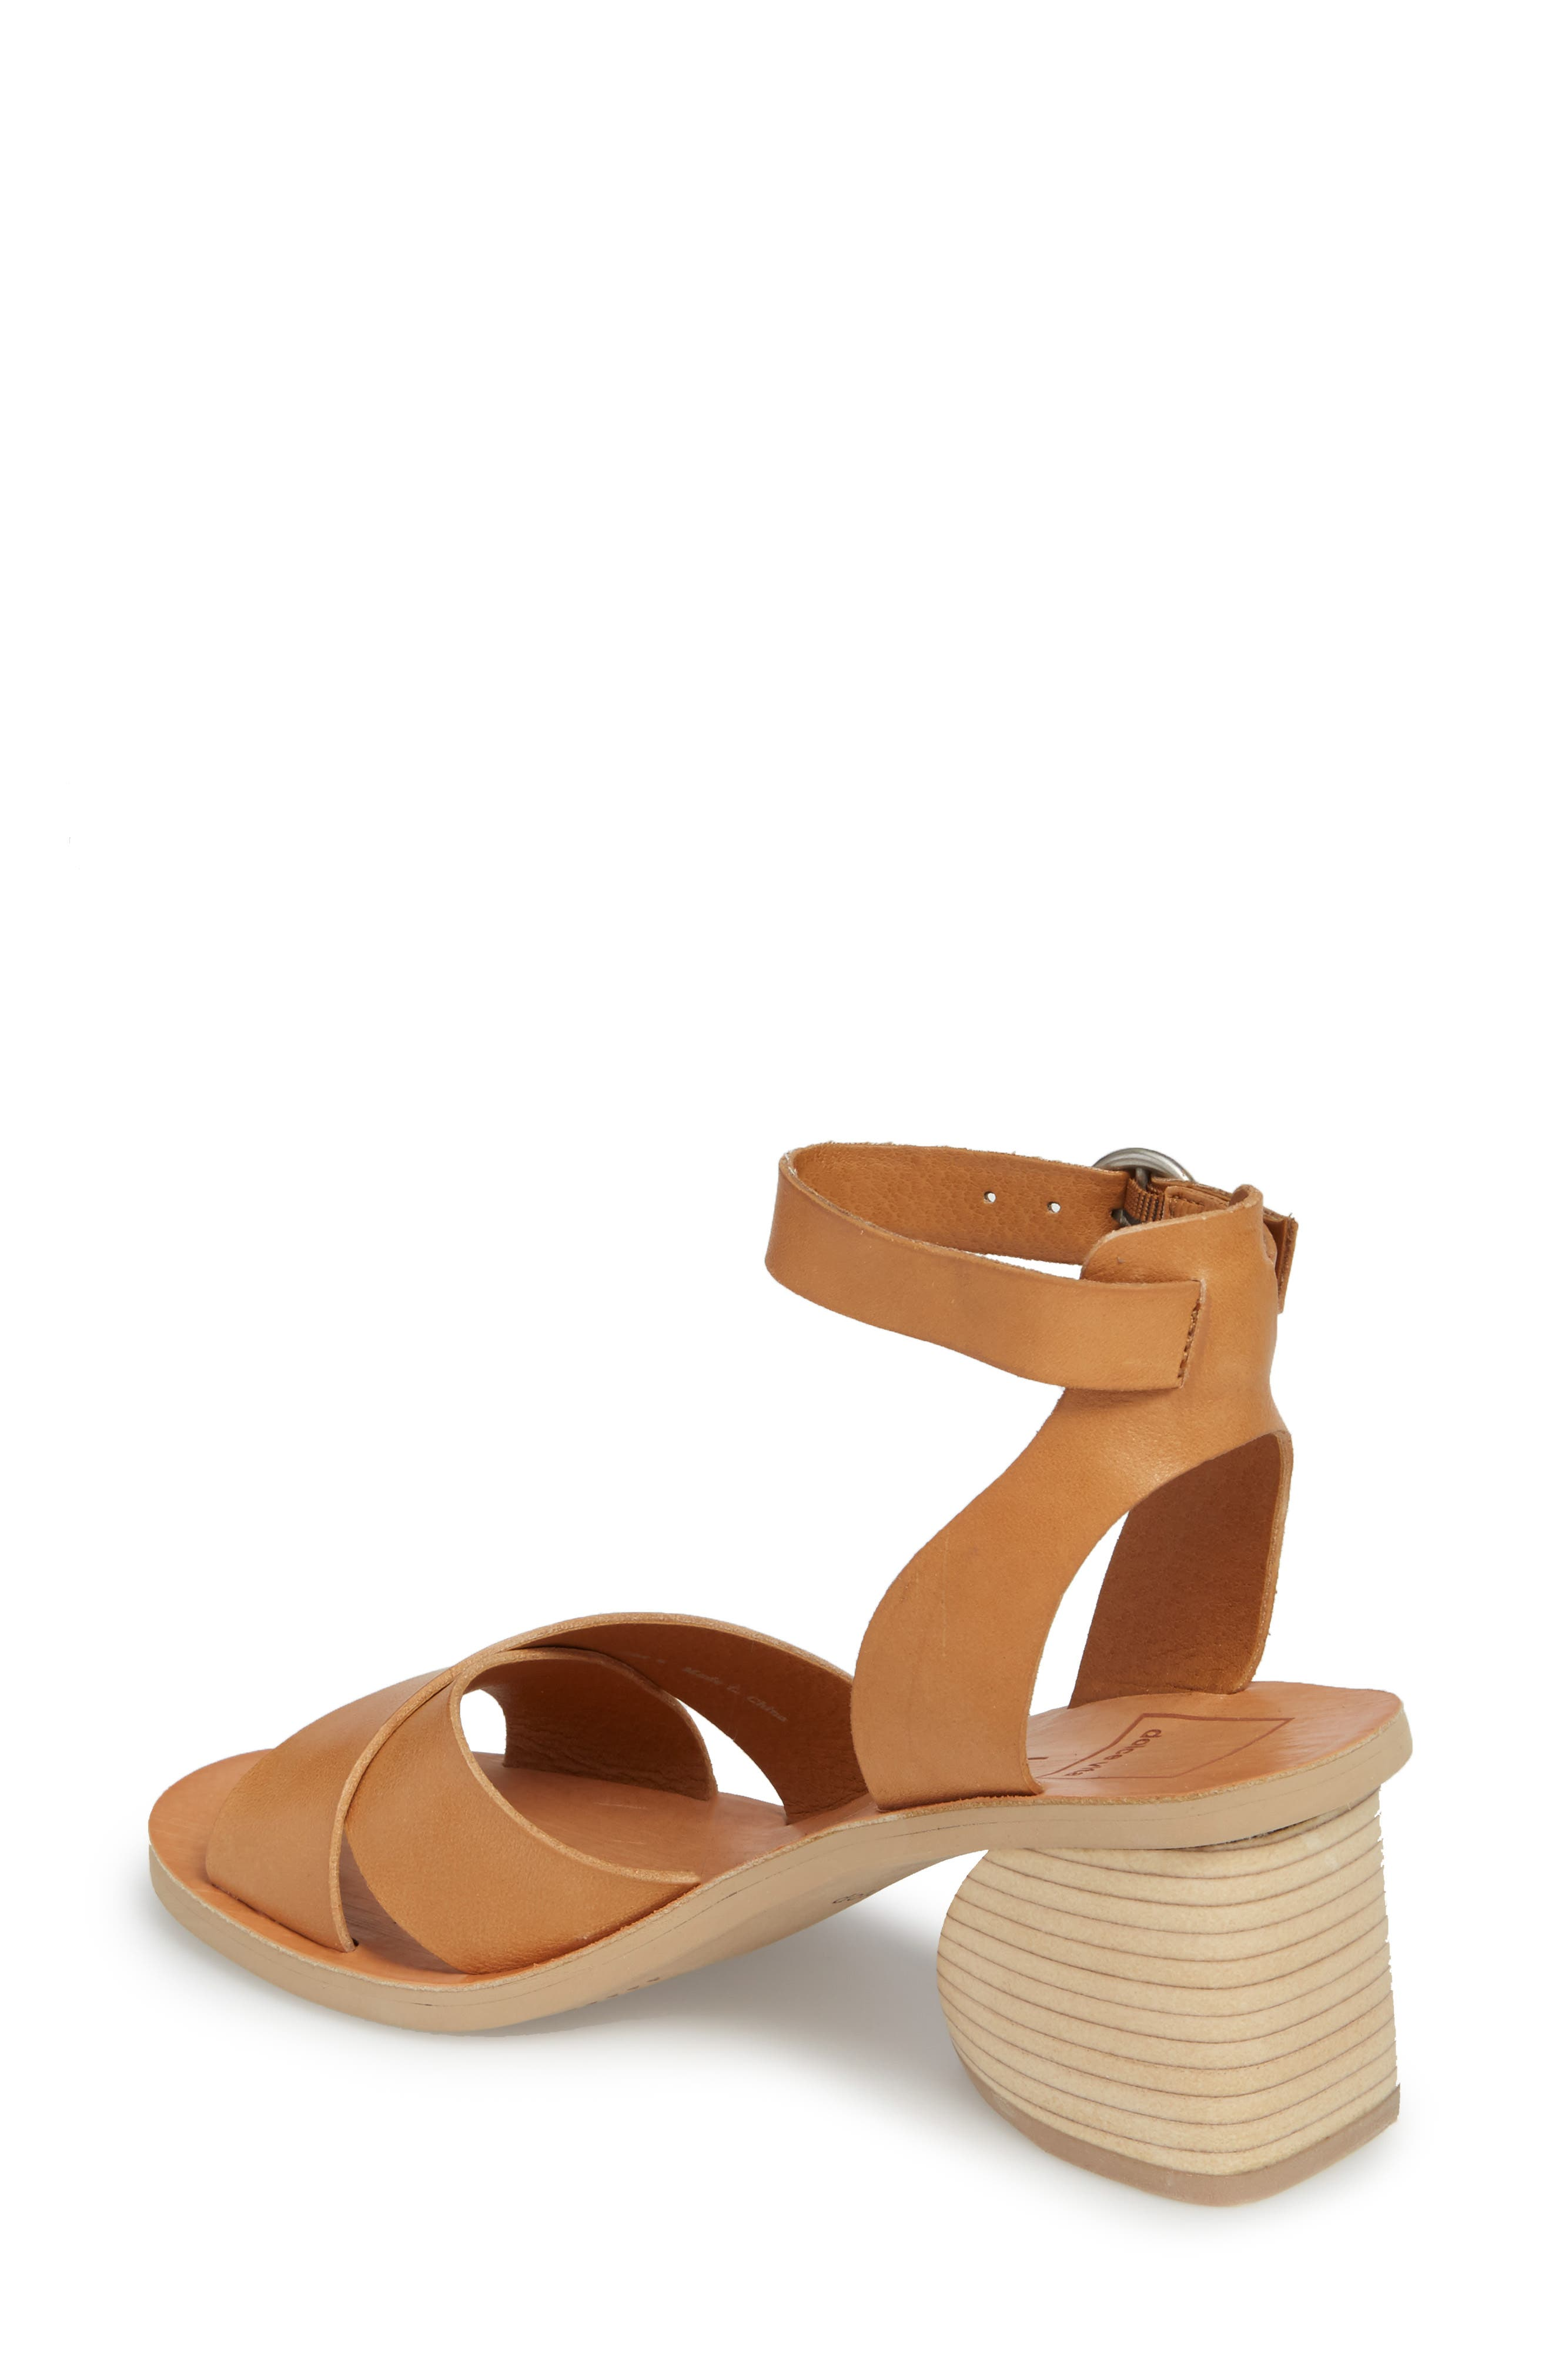 Roman Flared Heel Sandal,                             Alternate thumbnail 2, color,                             Caramel Leather